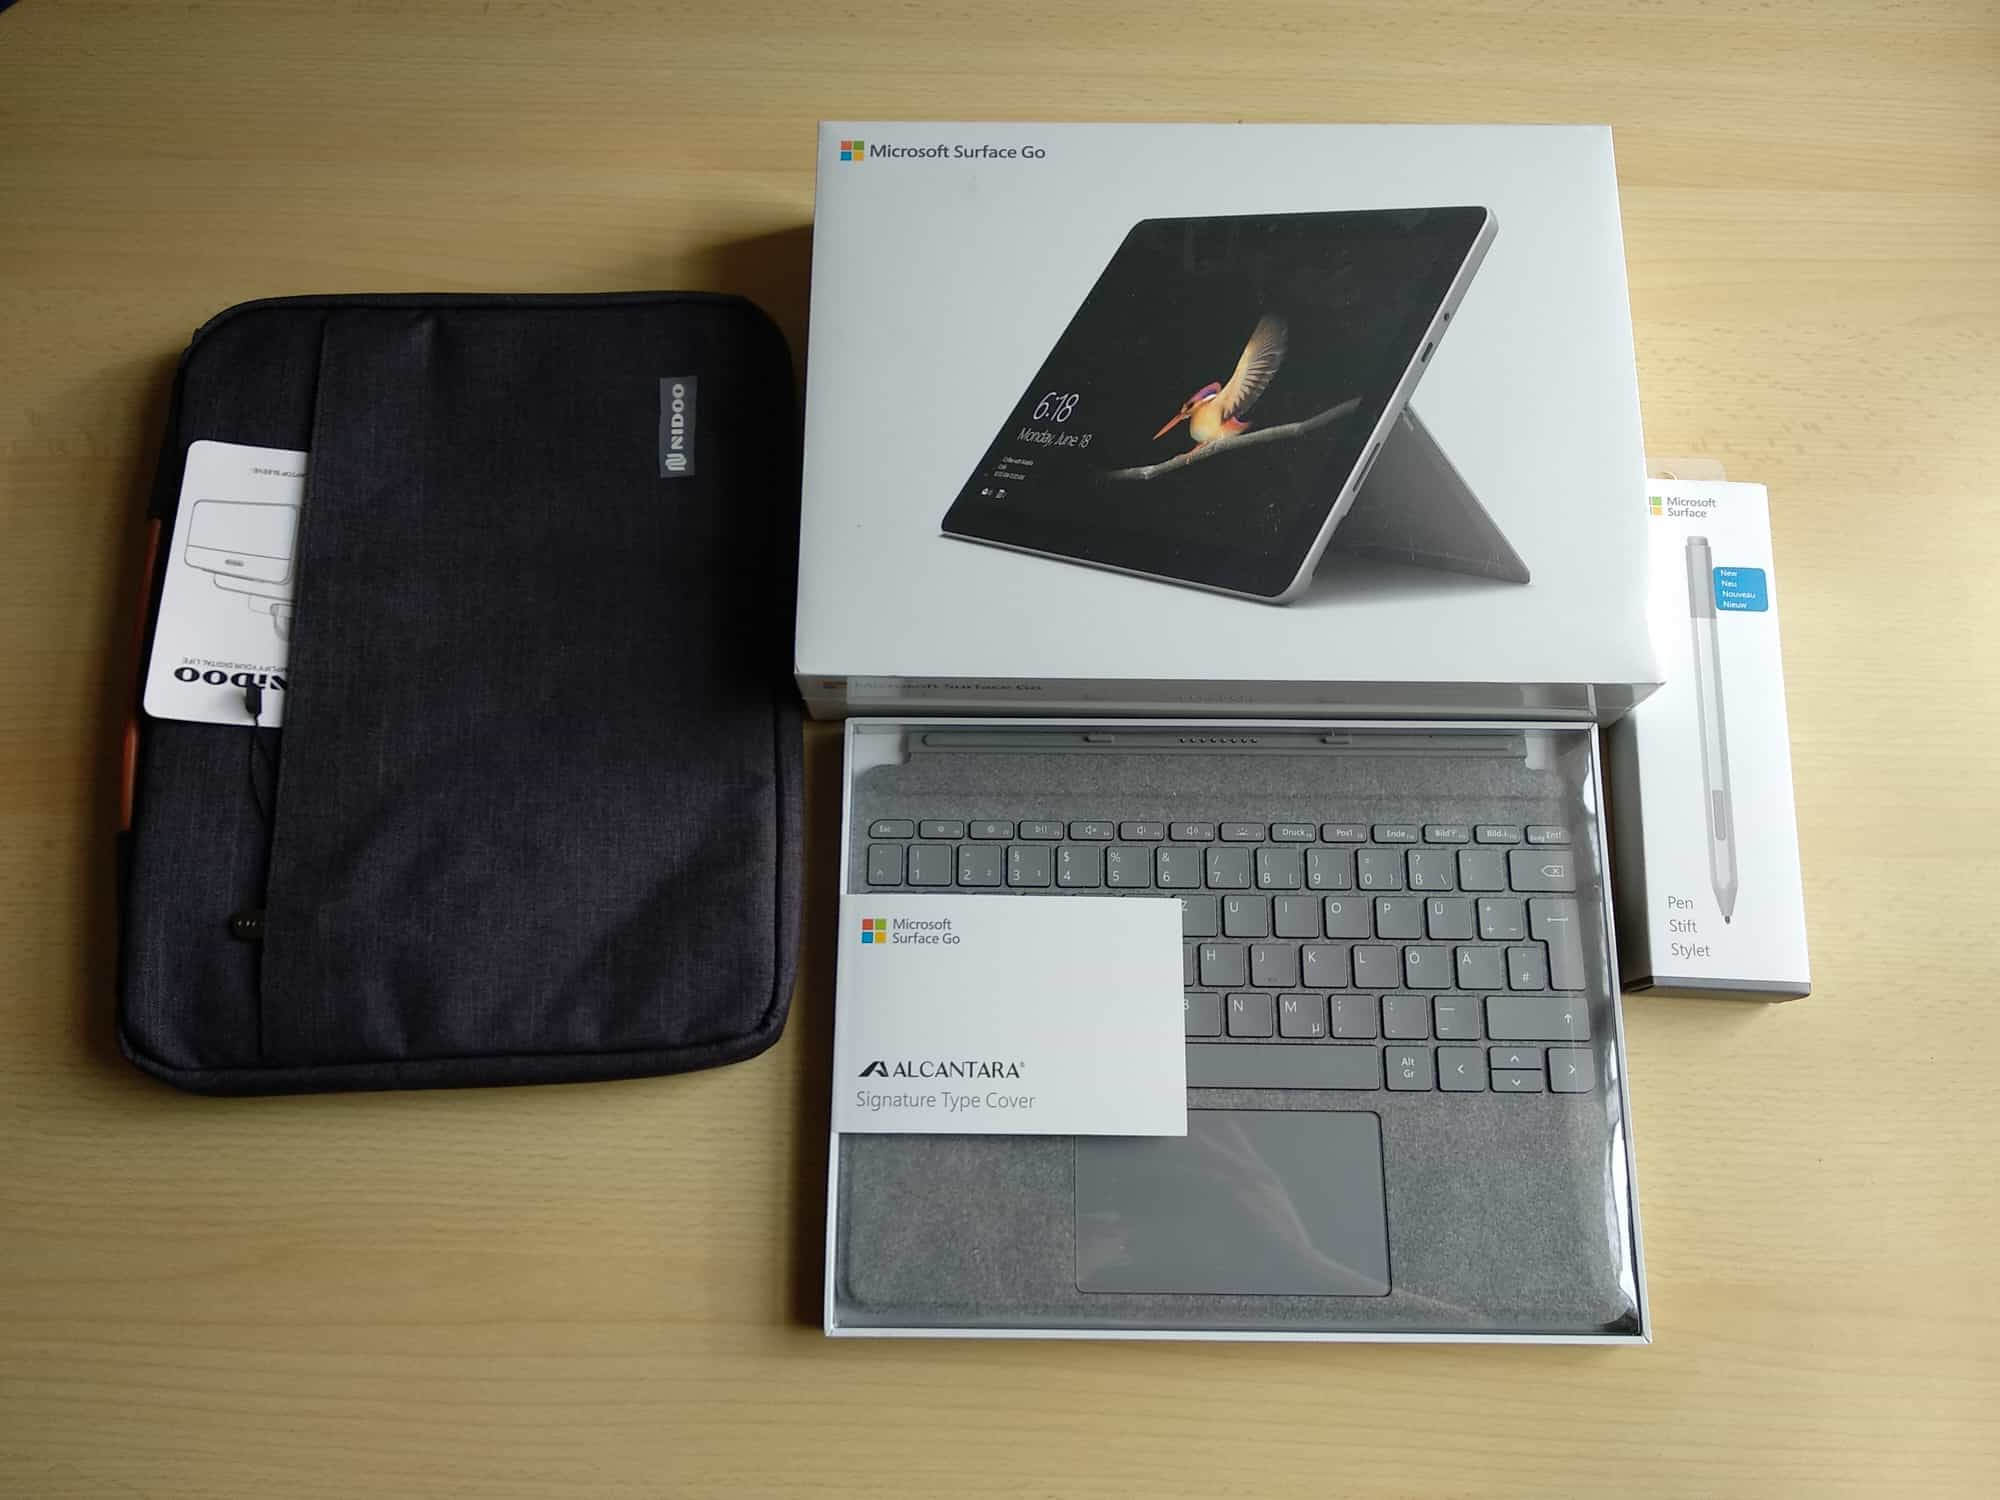 The Surface Go and its accessories